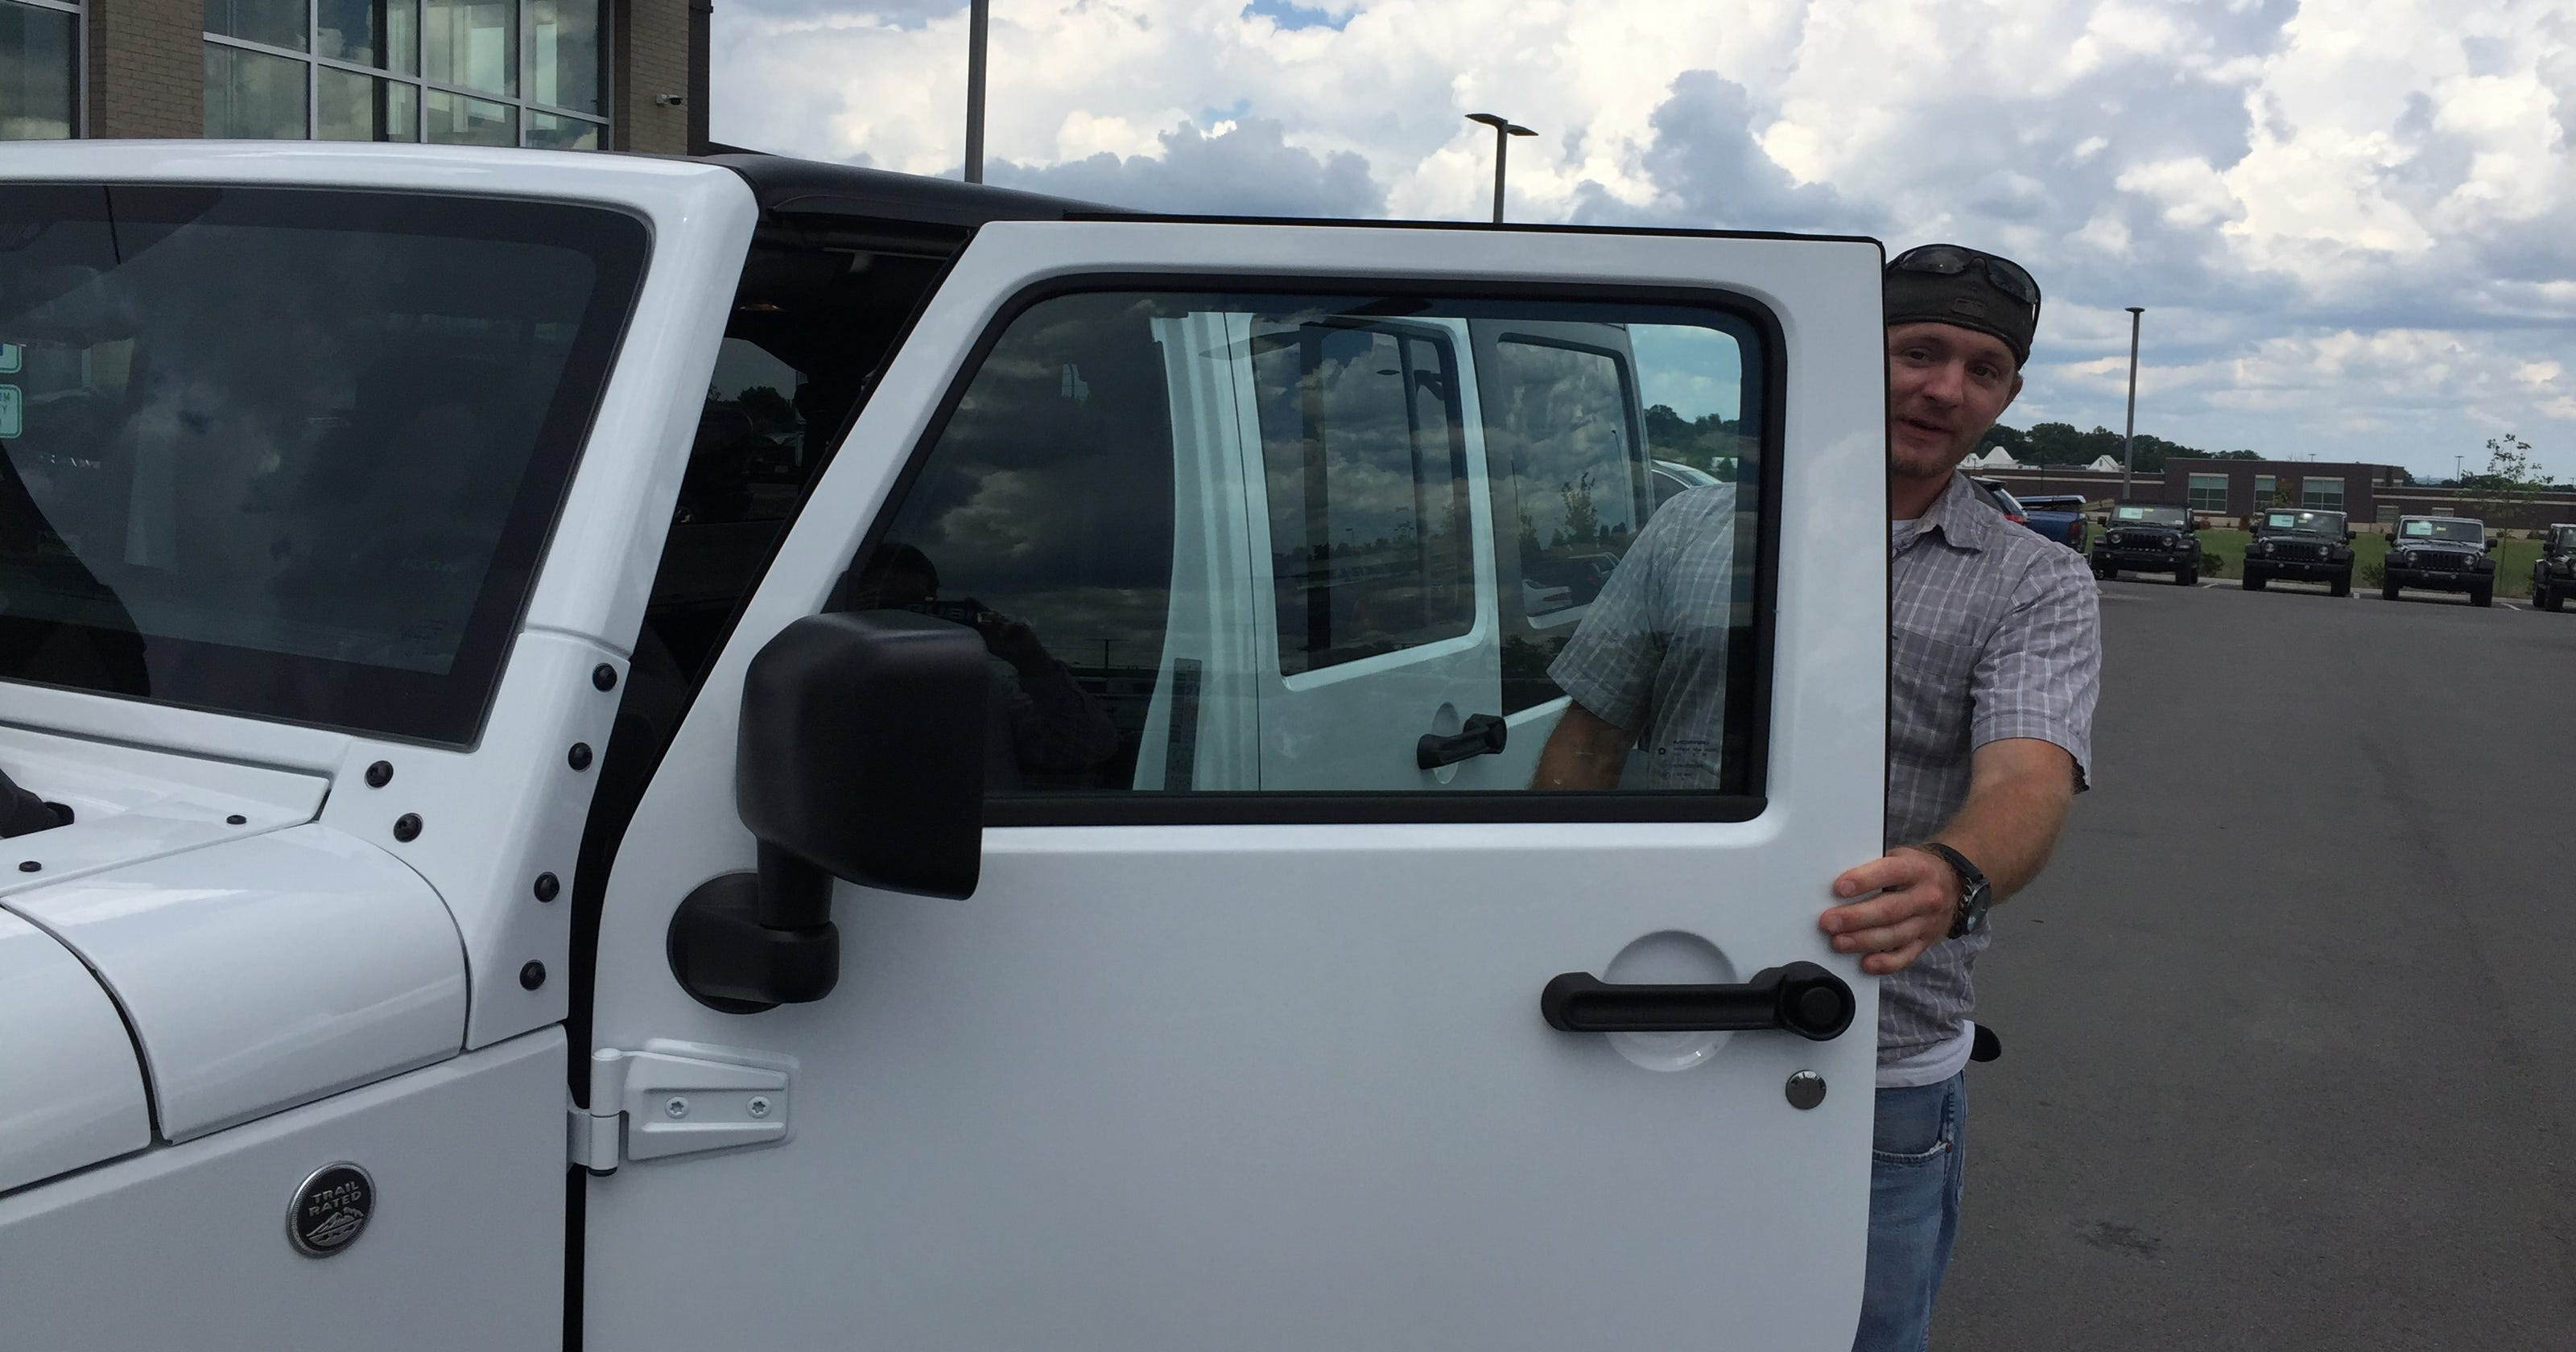 Goodlettsville man wins $60K Jeep Wrangler with second chance